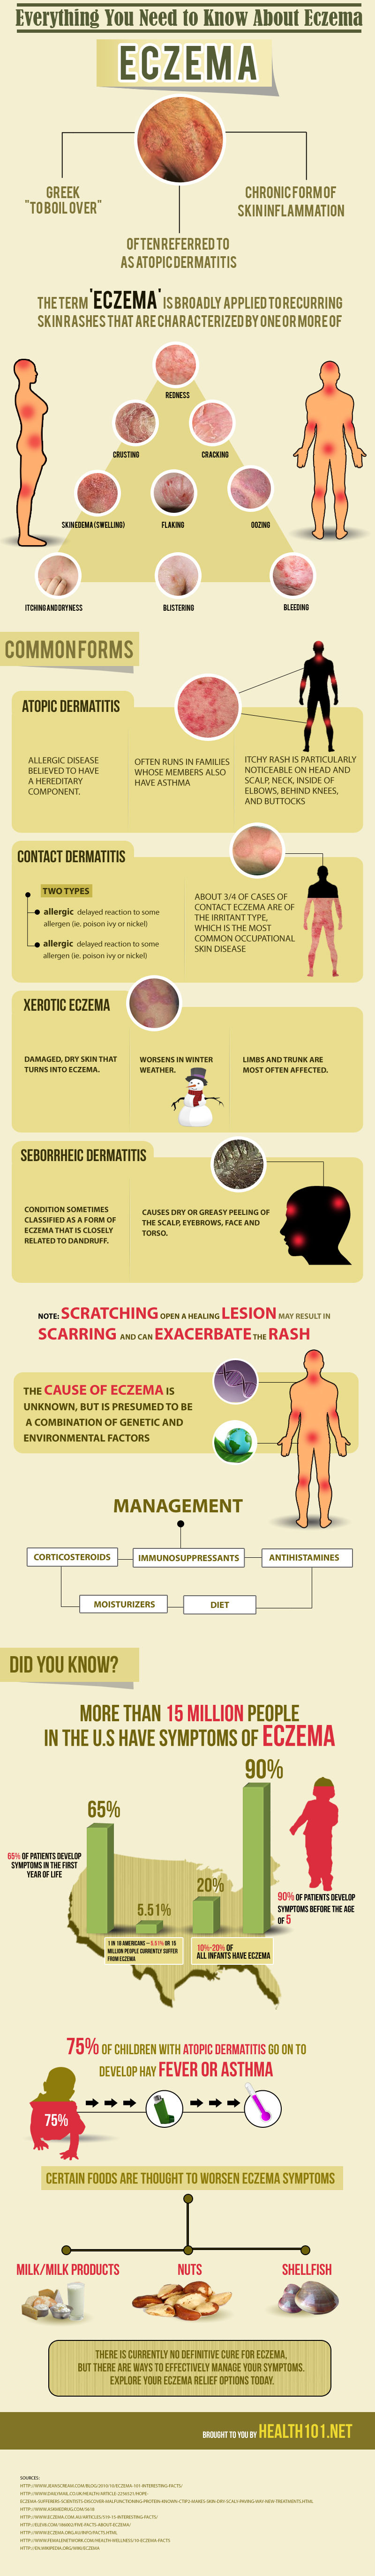 Facts About Eczema